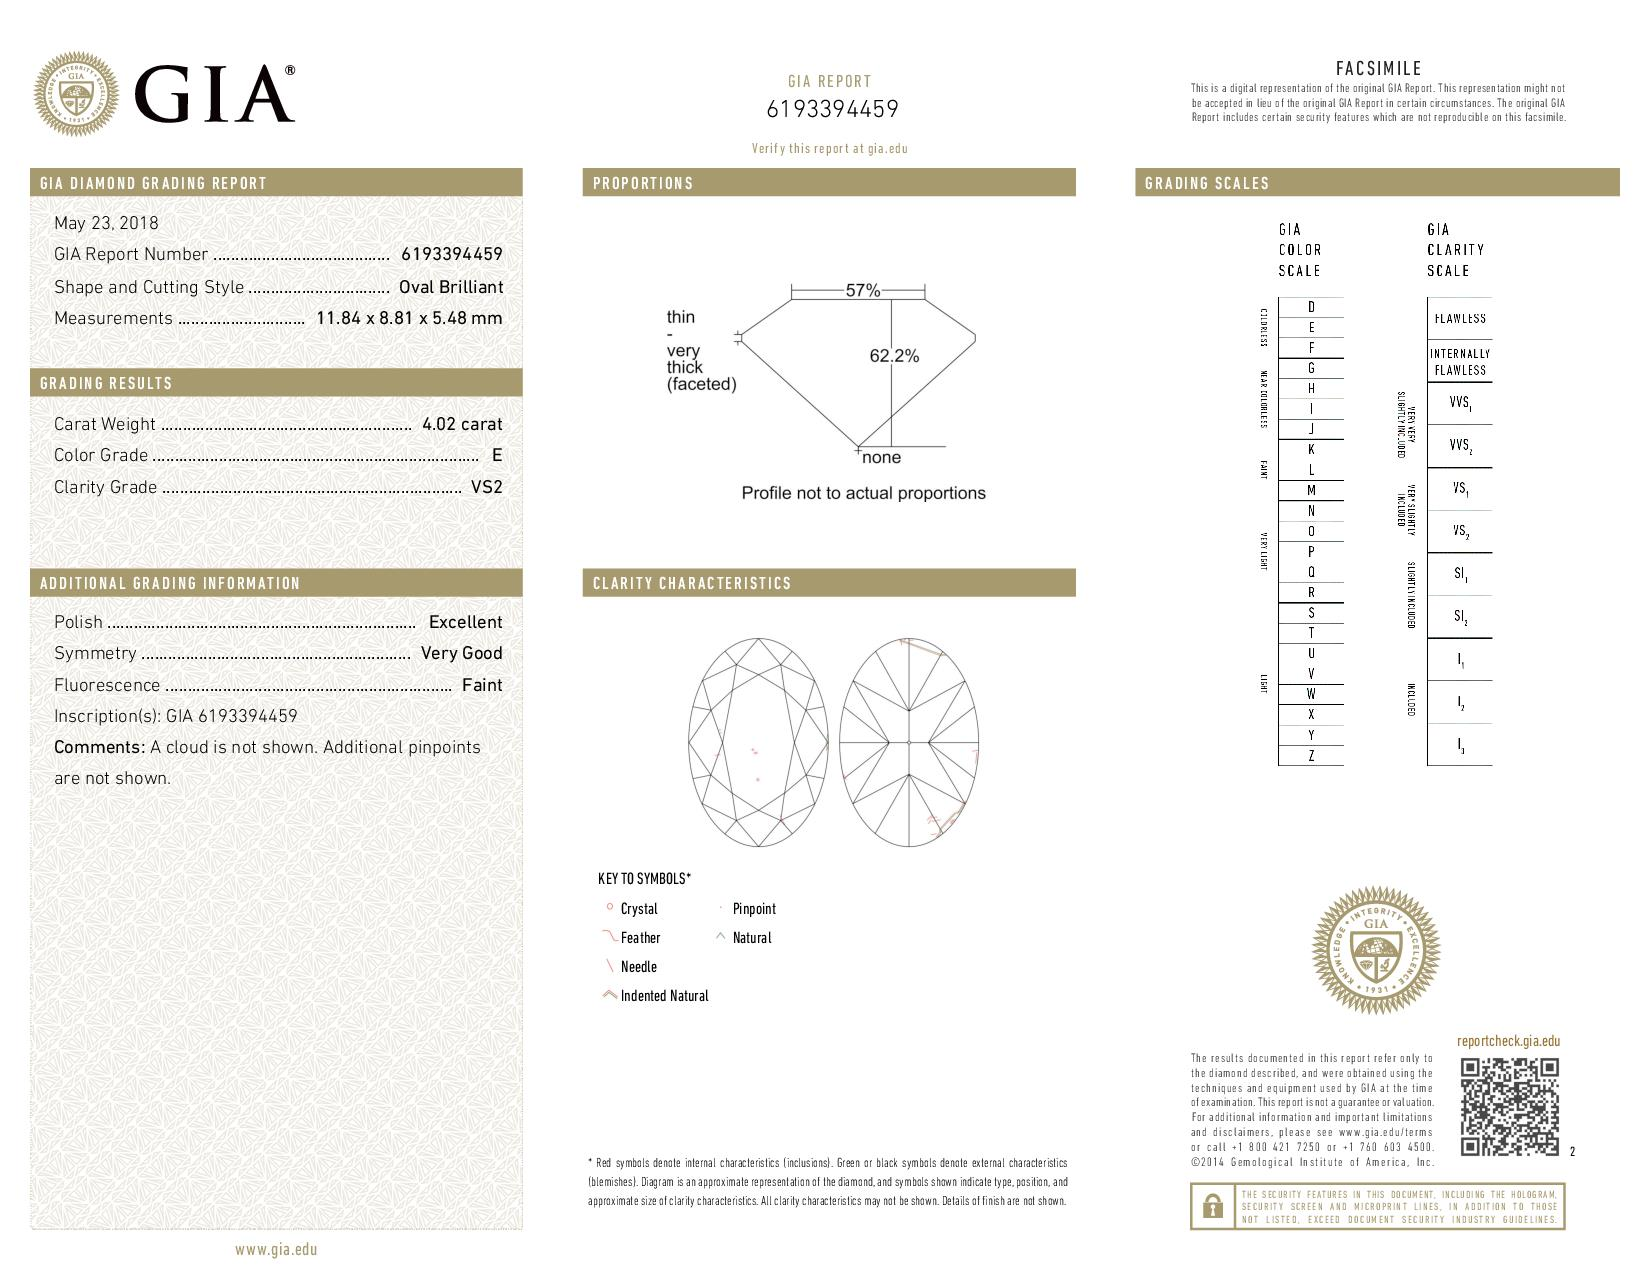 This is a 4.02 carat oval shape, E color, VS2 clarity natural diamond accompanied by a GIA grading report.